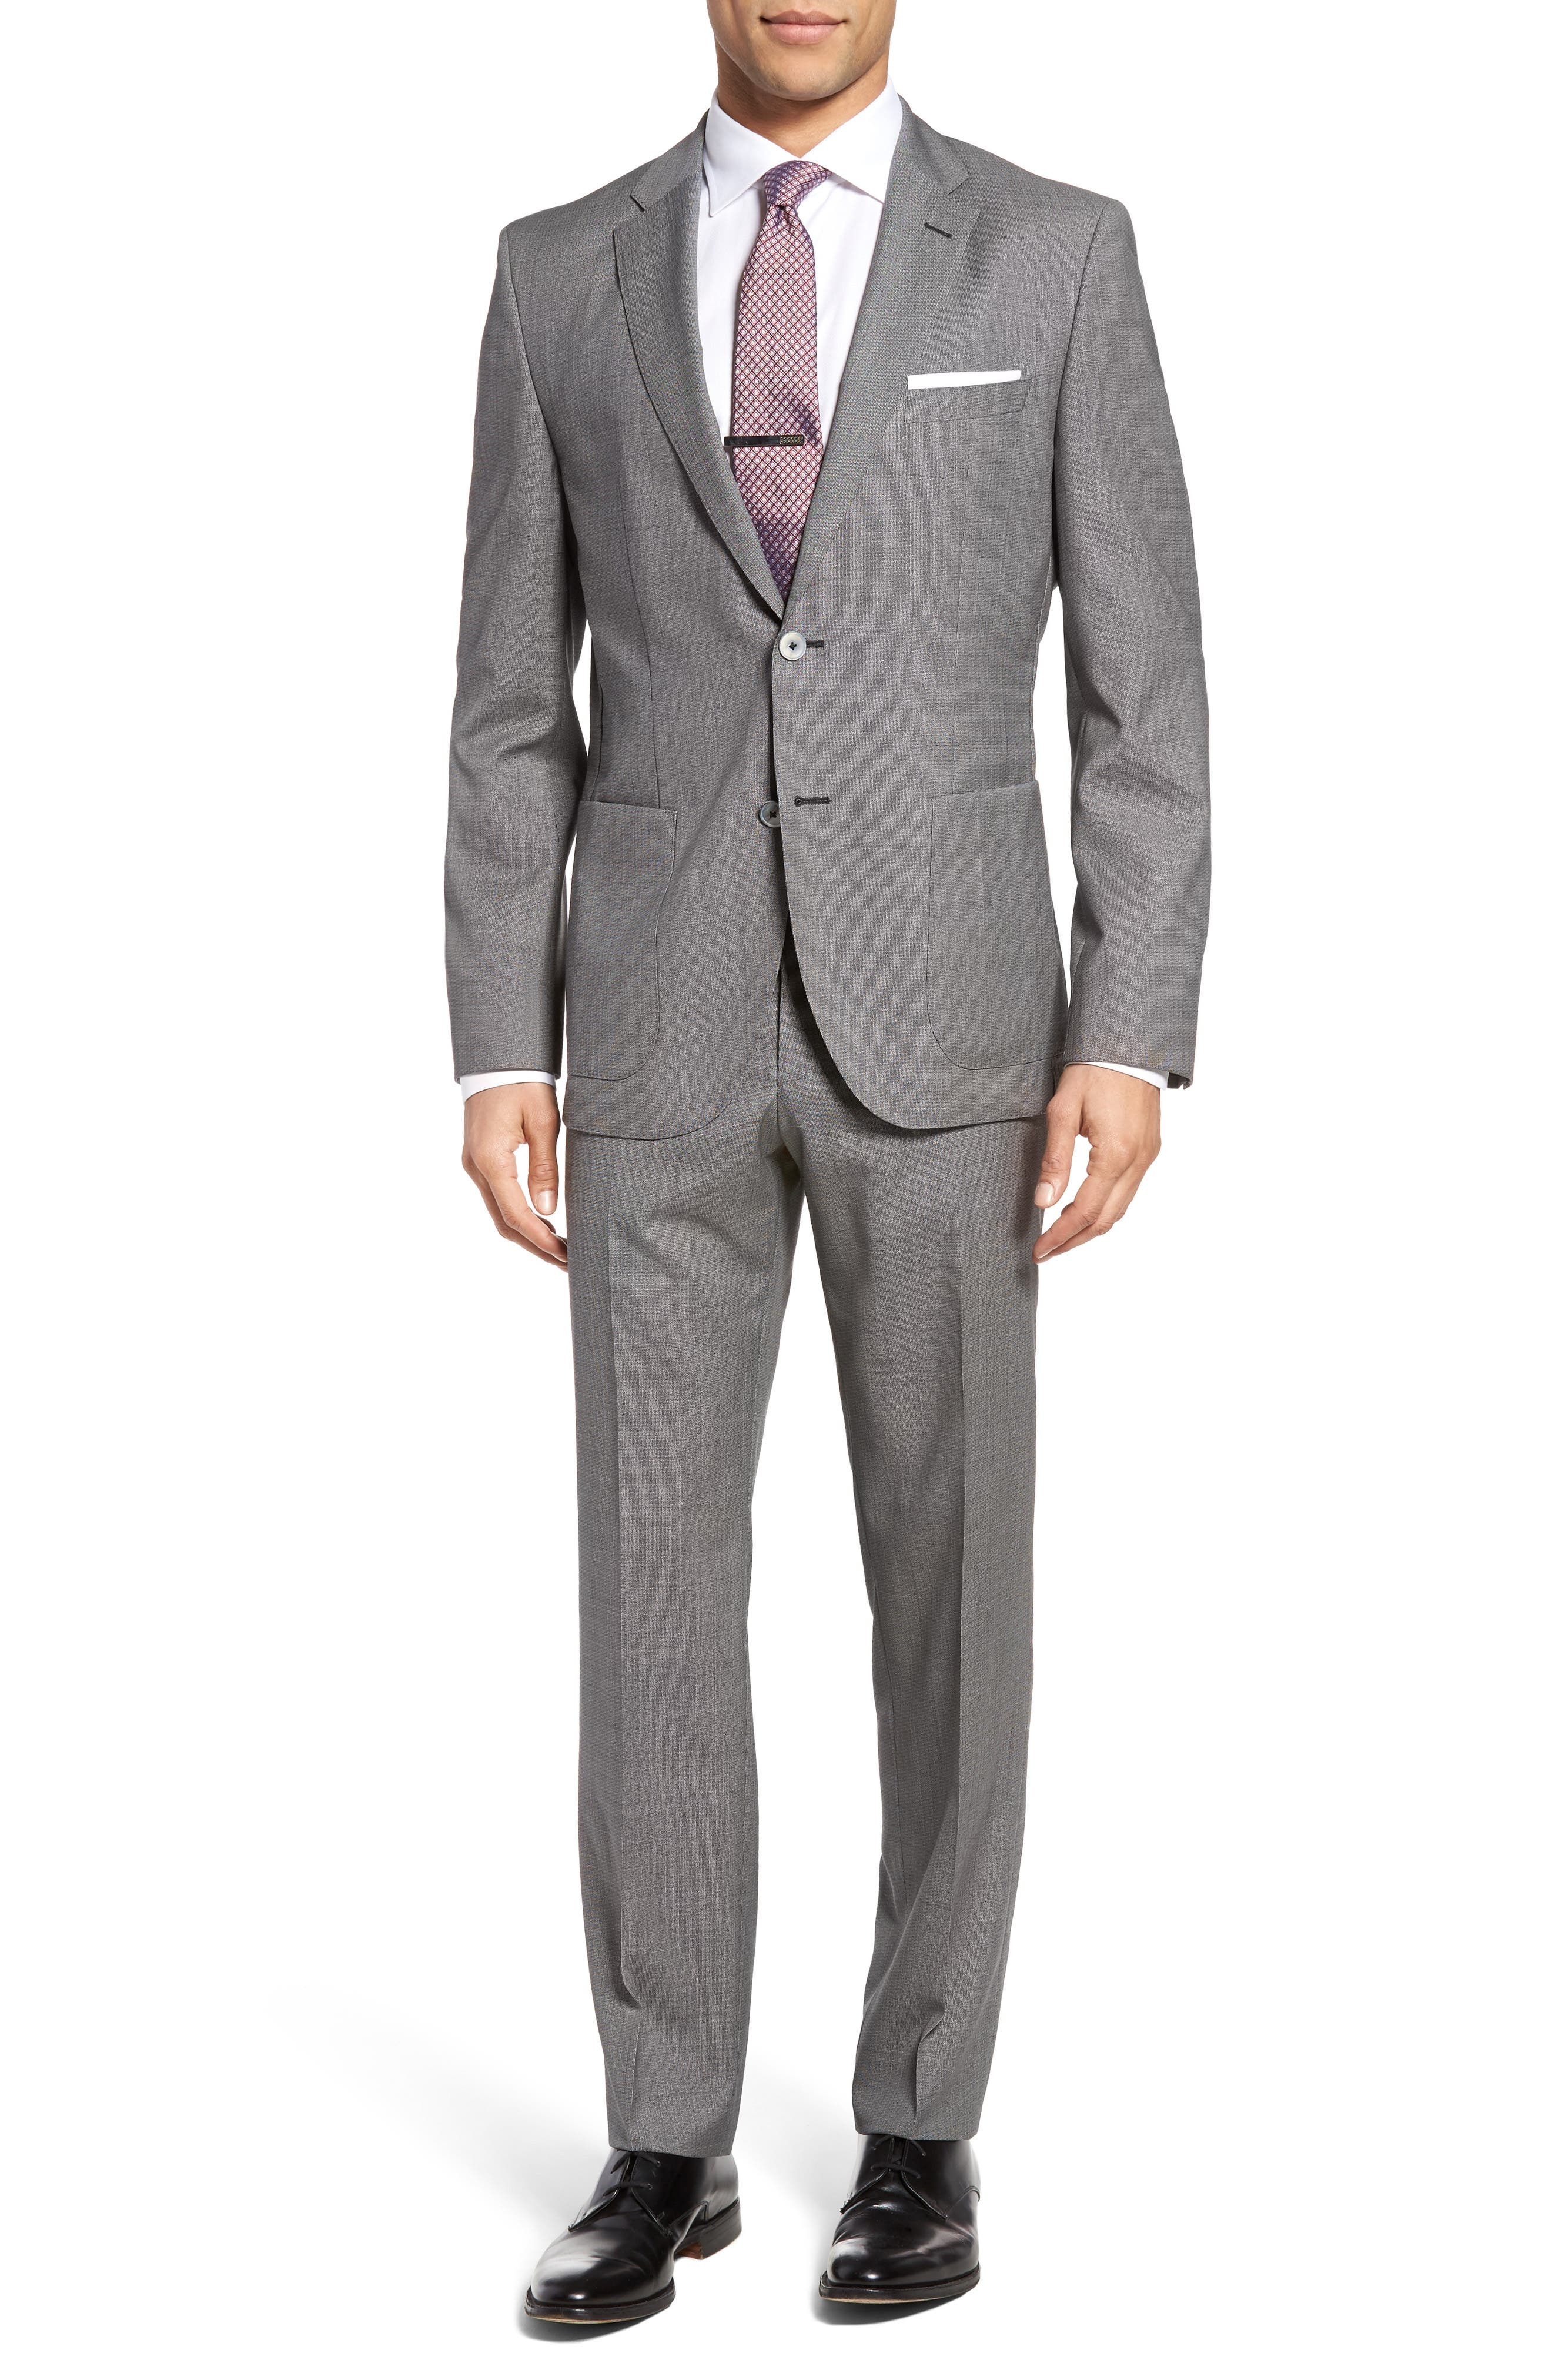 Main Image - BOSS Janon/Lenon Trim Fit Solid Wool Suit